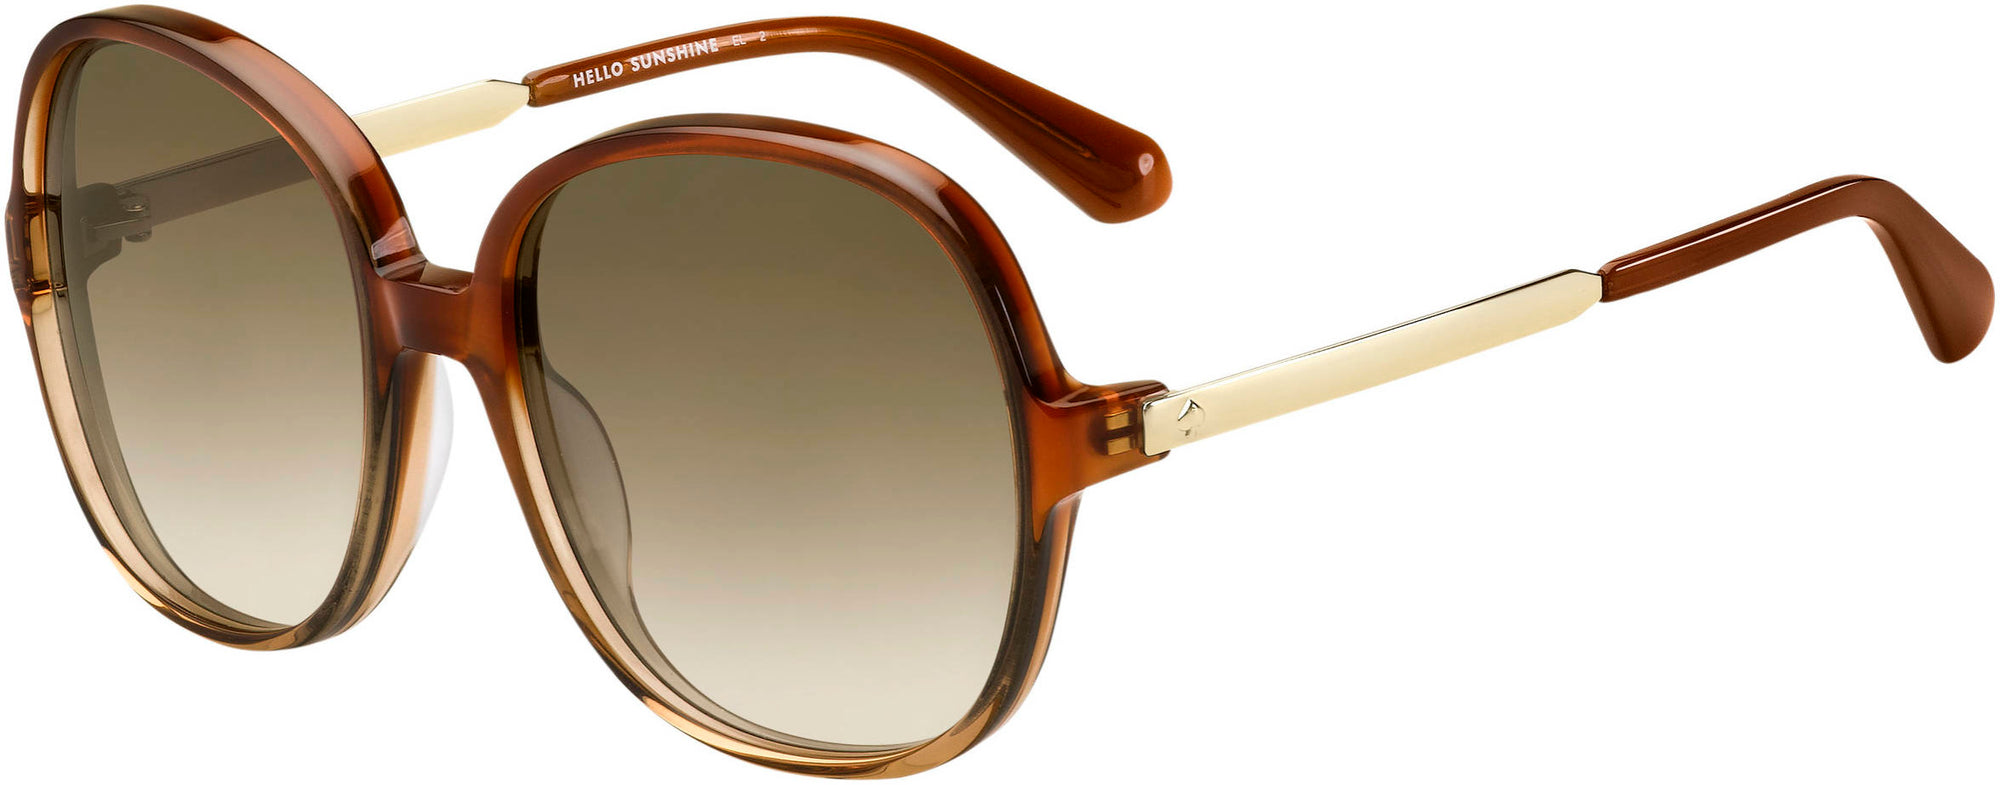 Givenchy ADRIYANNA/S Oval Modified Sunglasses 009Q-009Q  Brown (HA Brown Gradient)